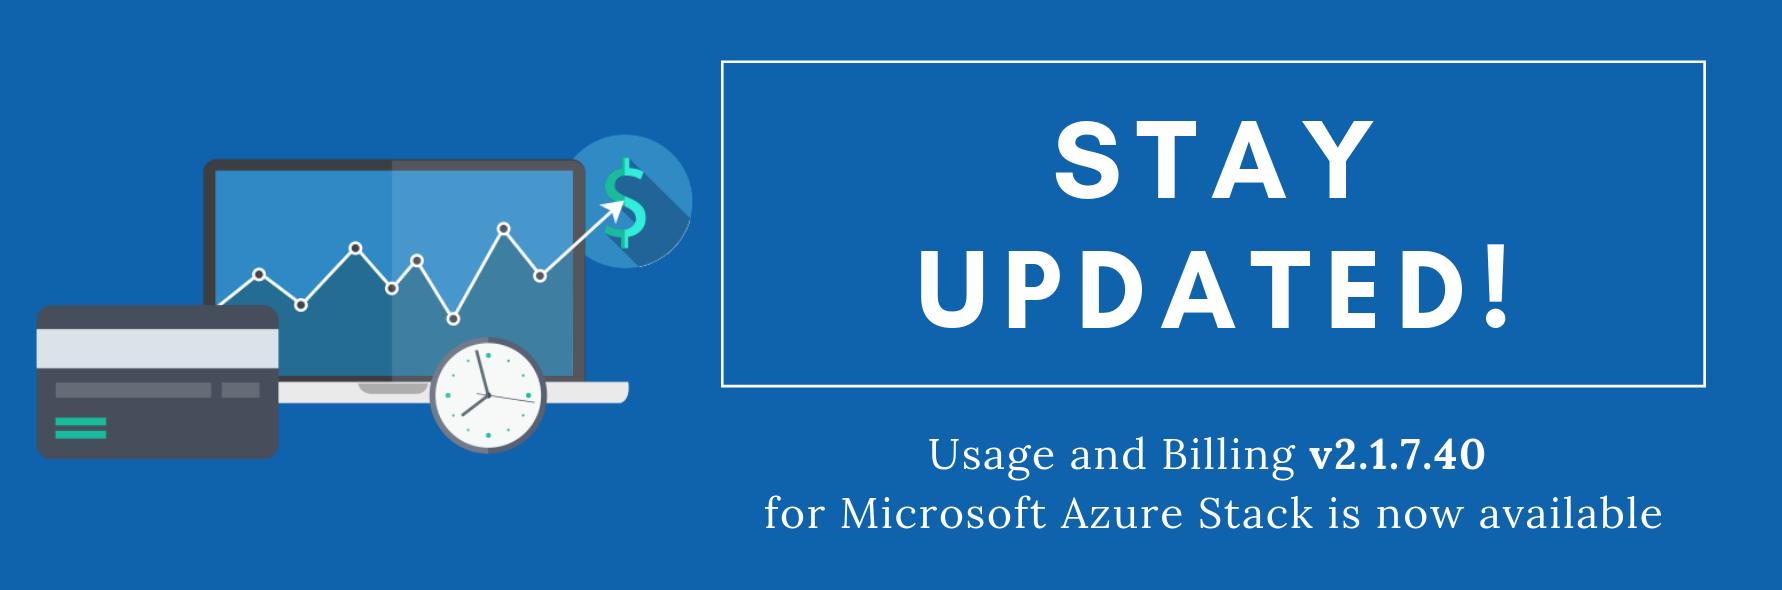 Usage and Billing v2.1.7.40 for Microsoft Azure Stack